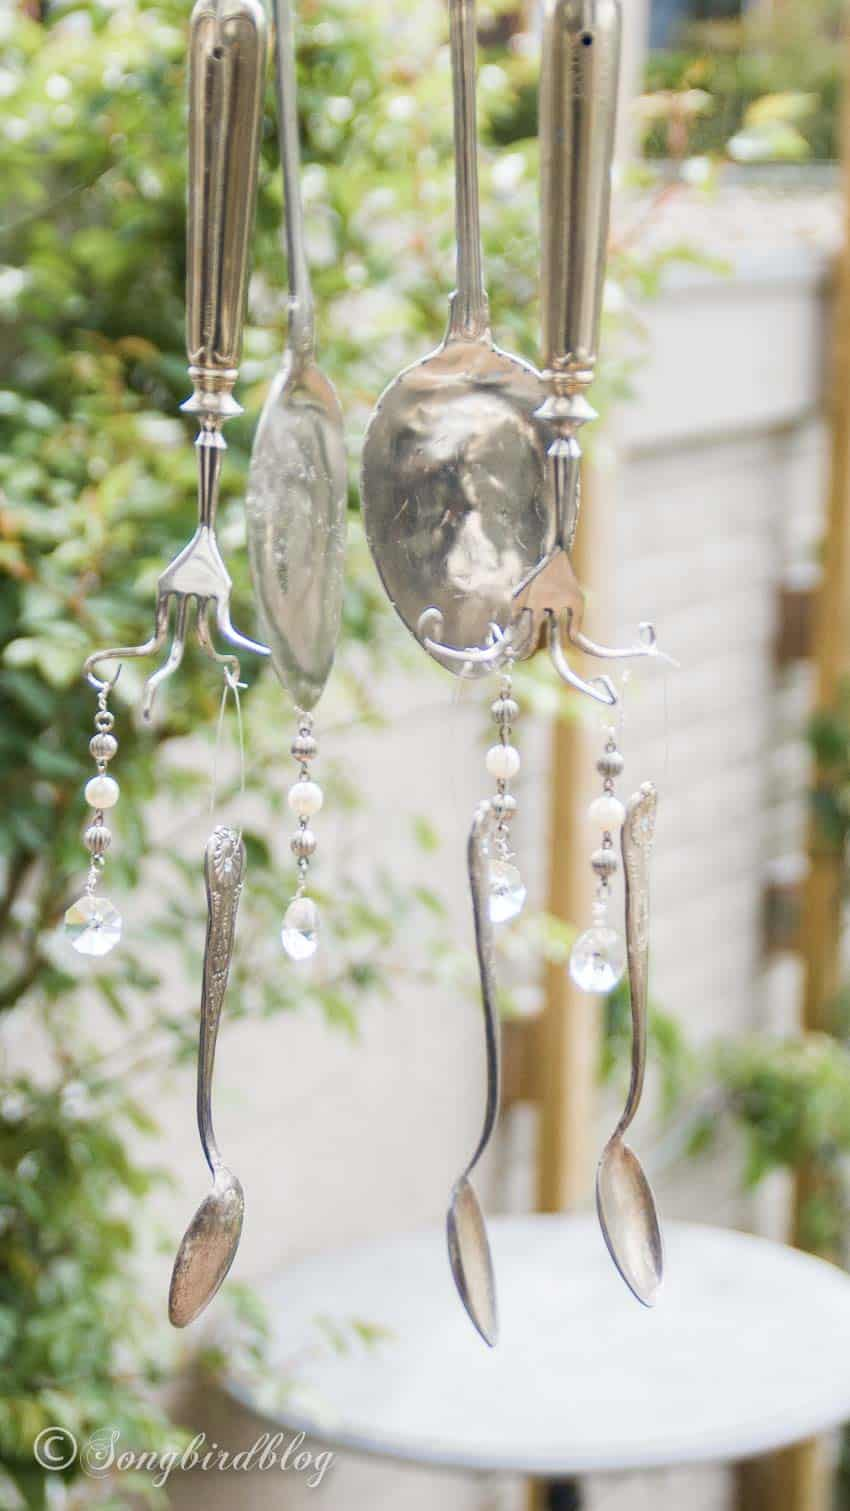 wind chime made from silverware hanging in garden